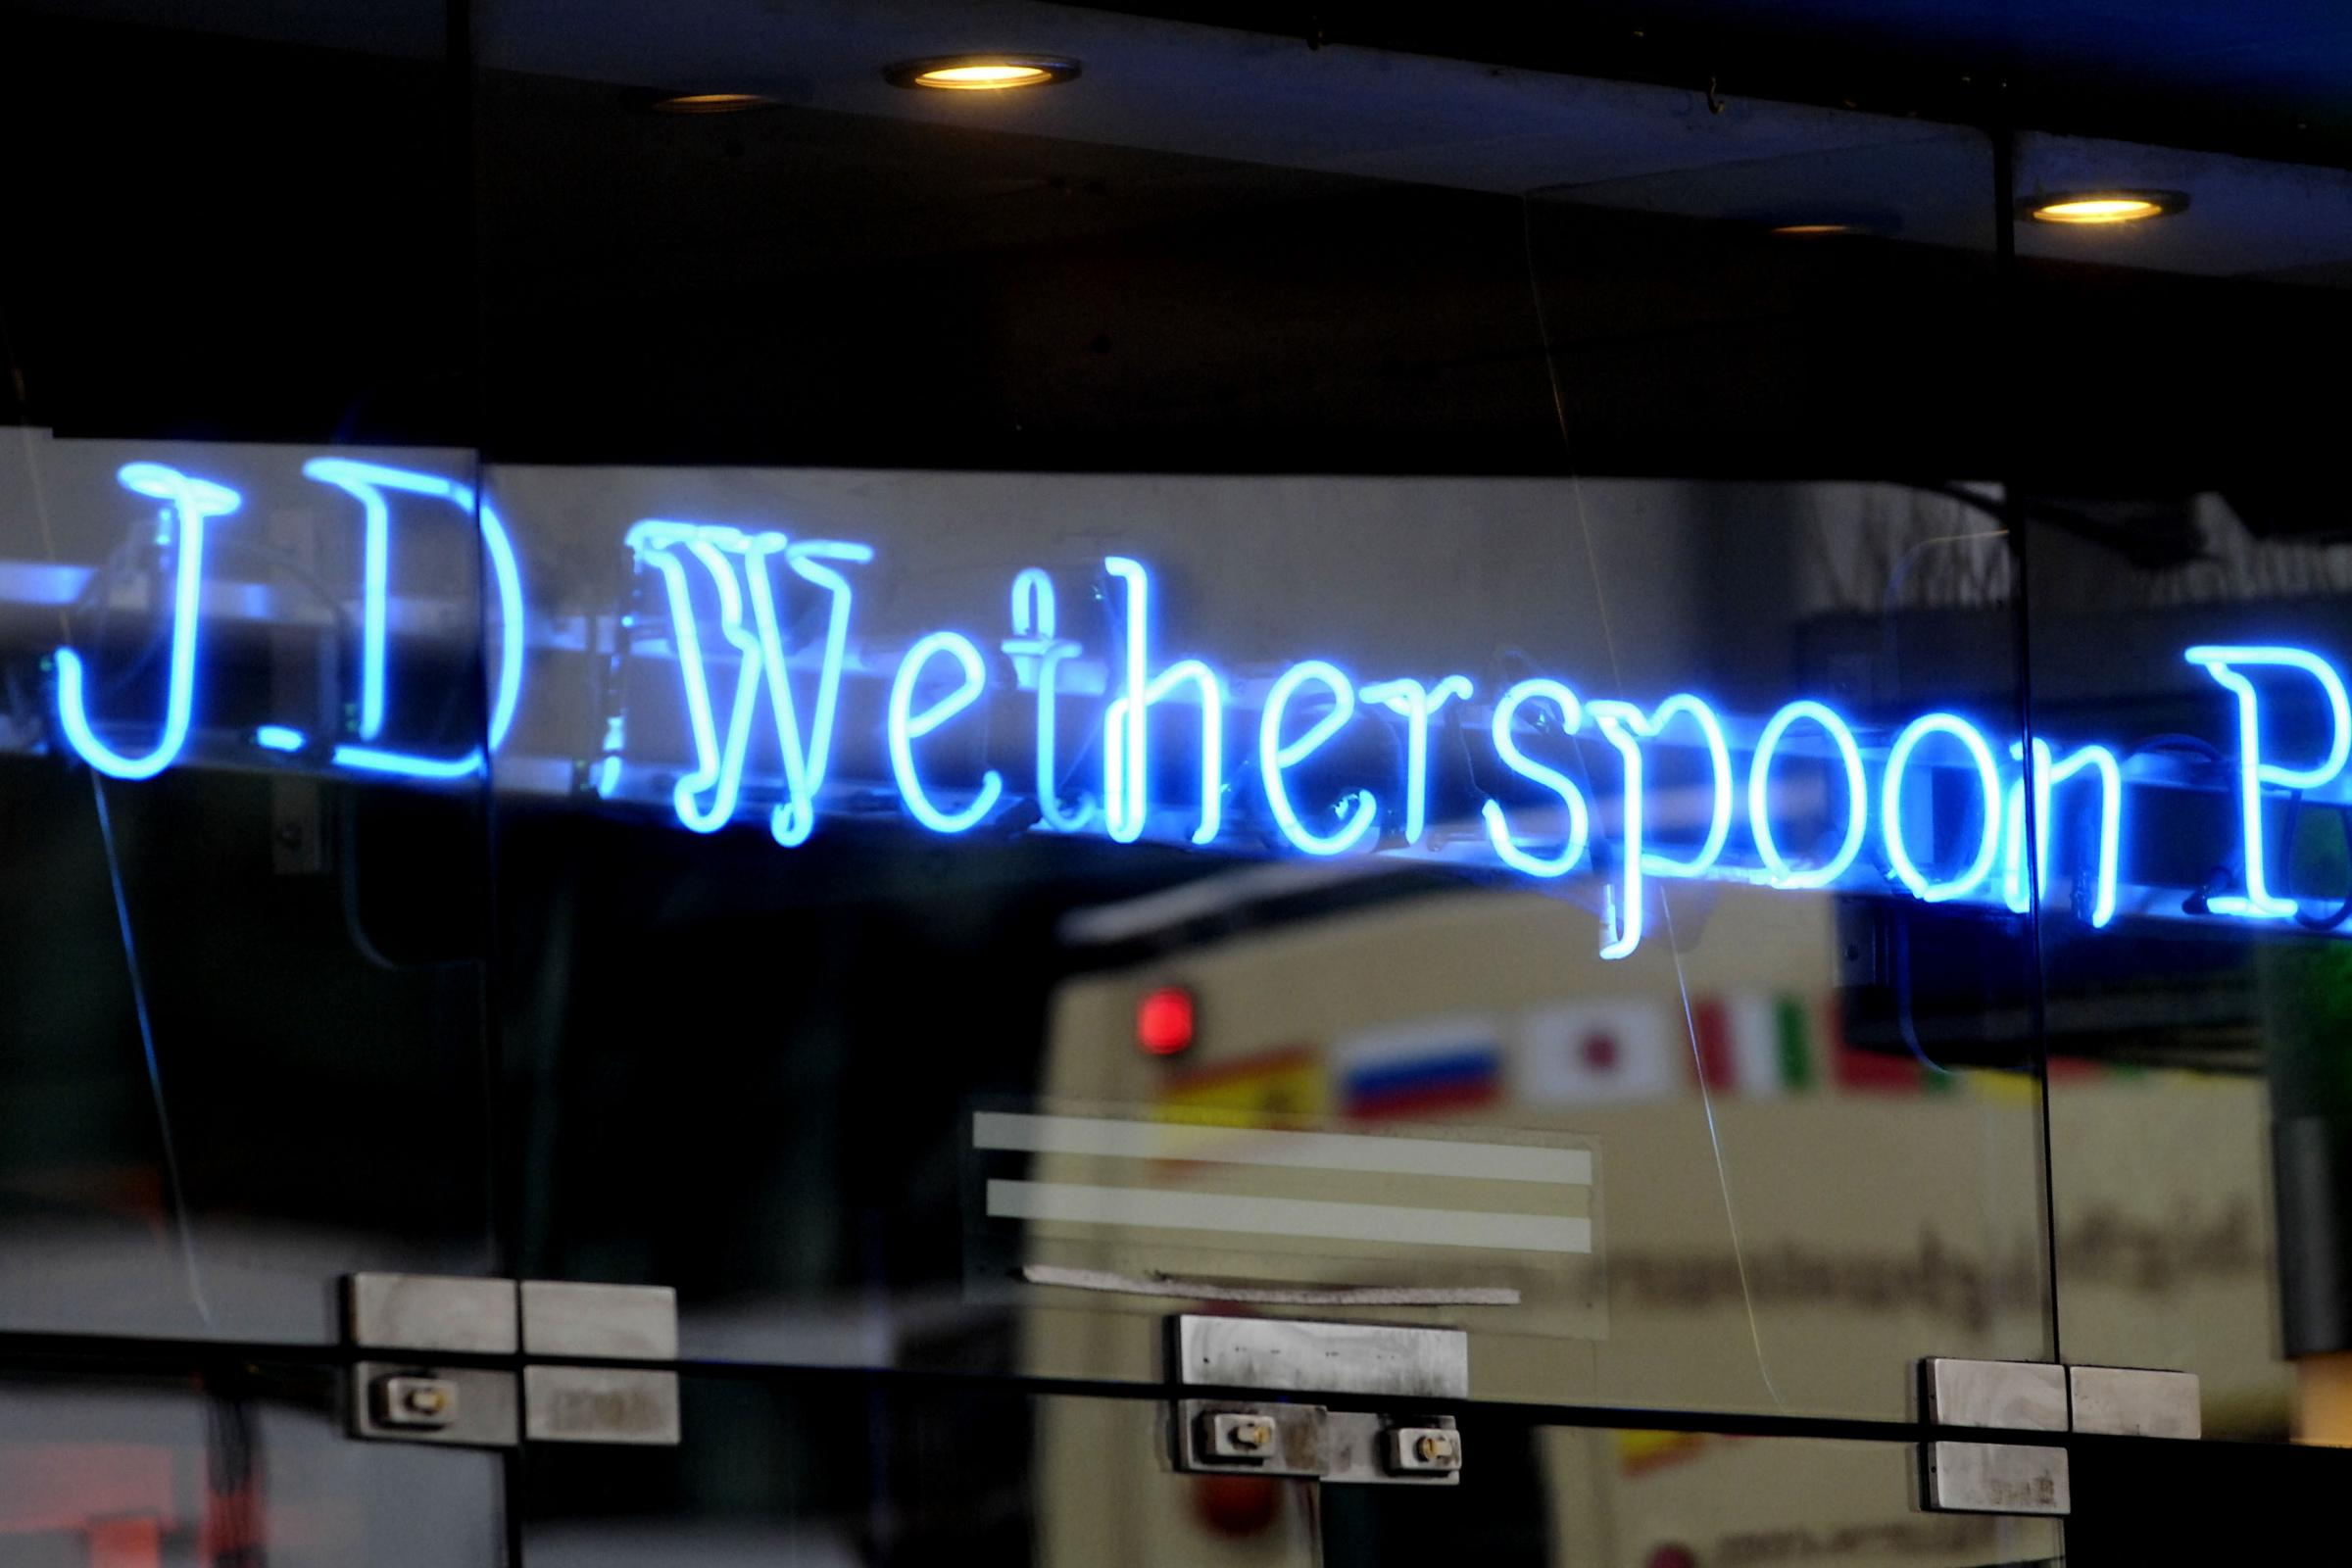 Wetherspoons is shutting down its social media